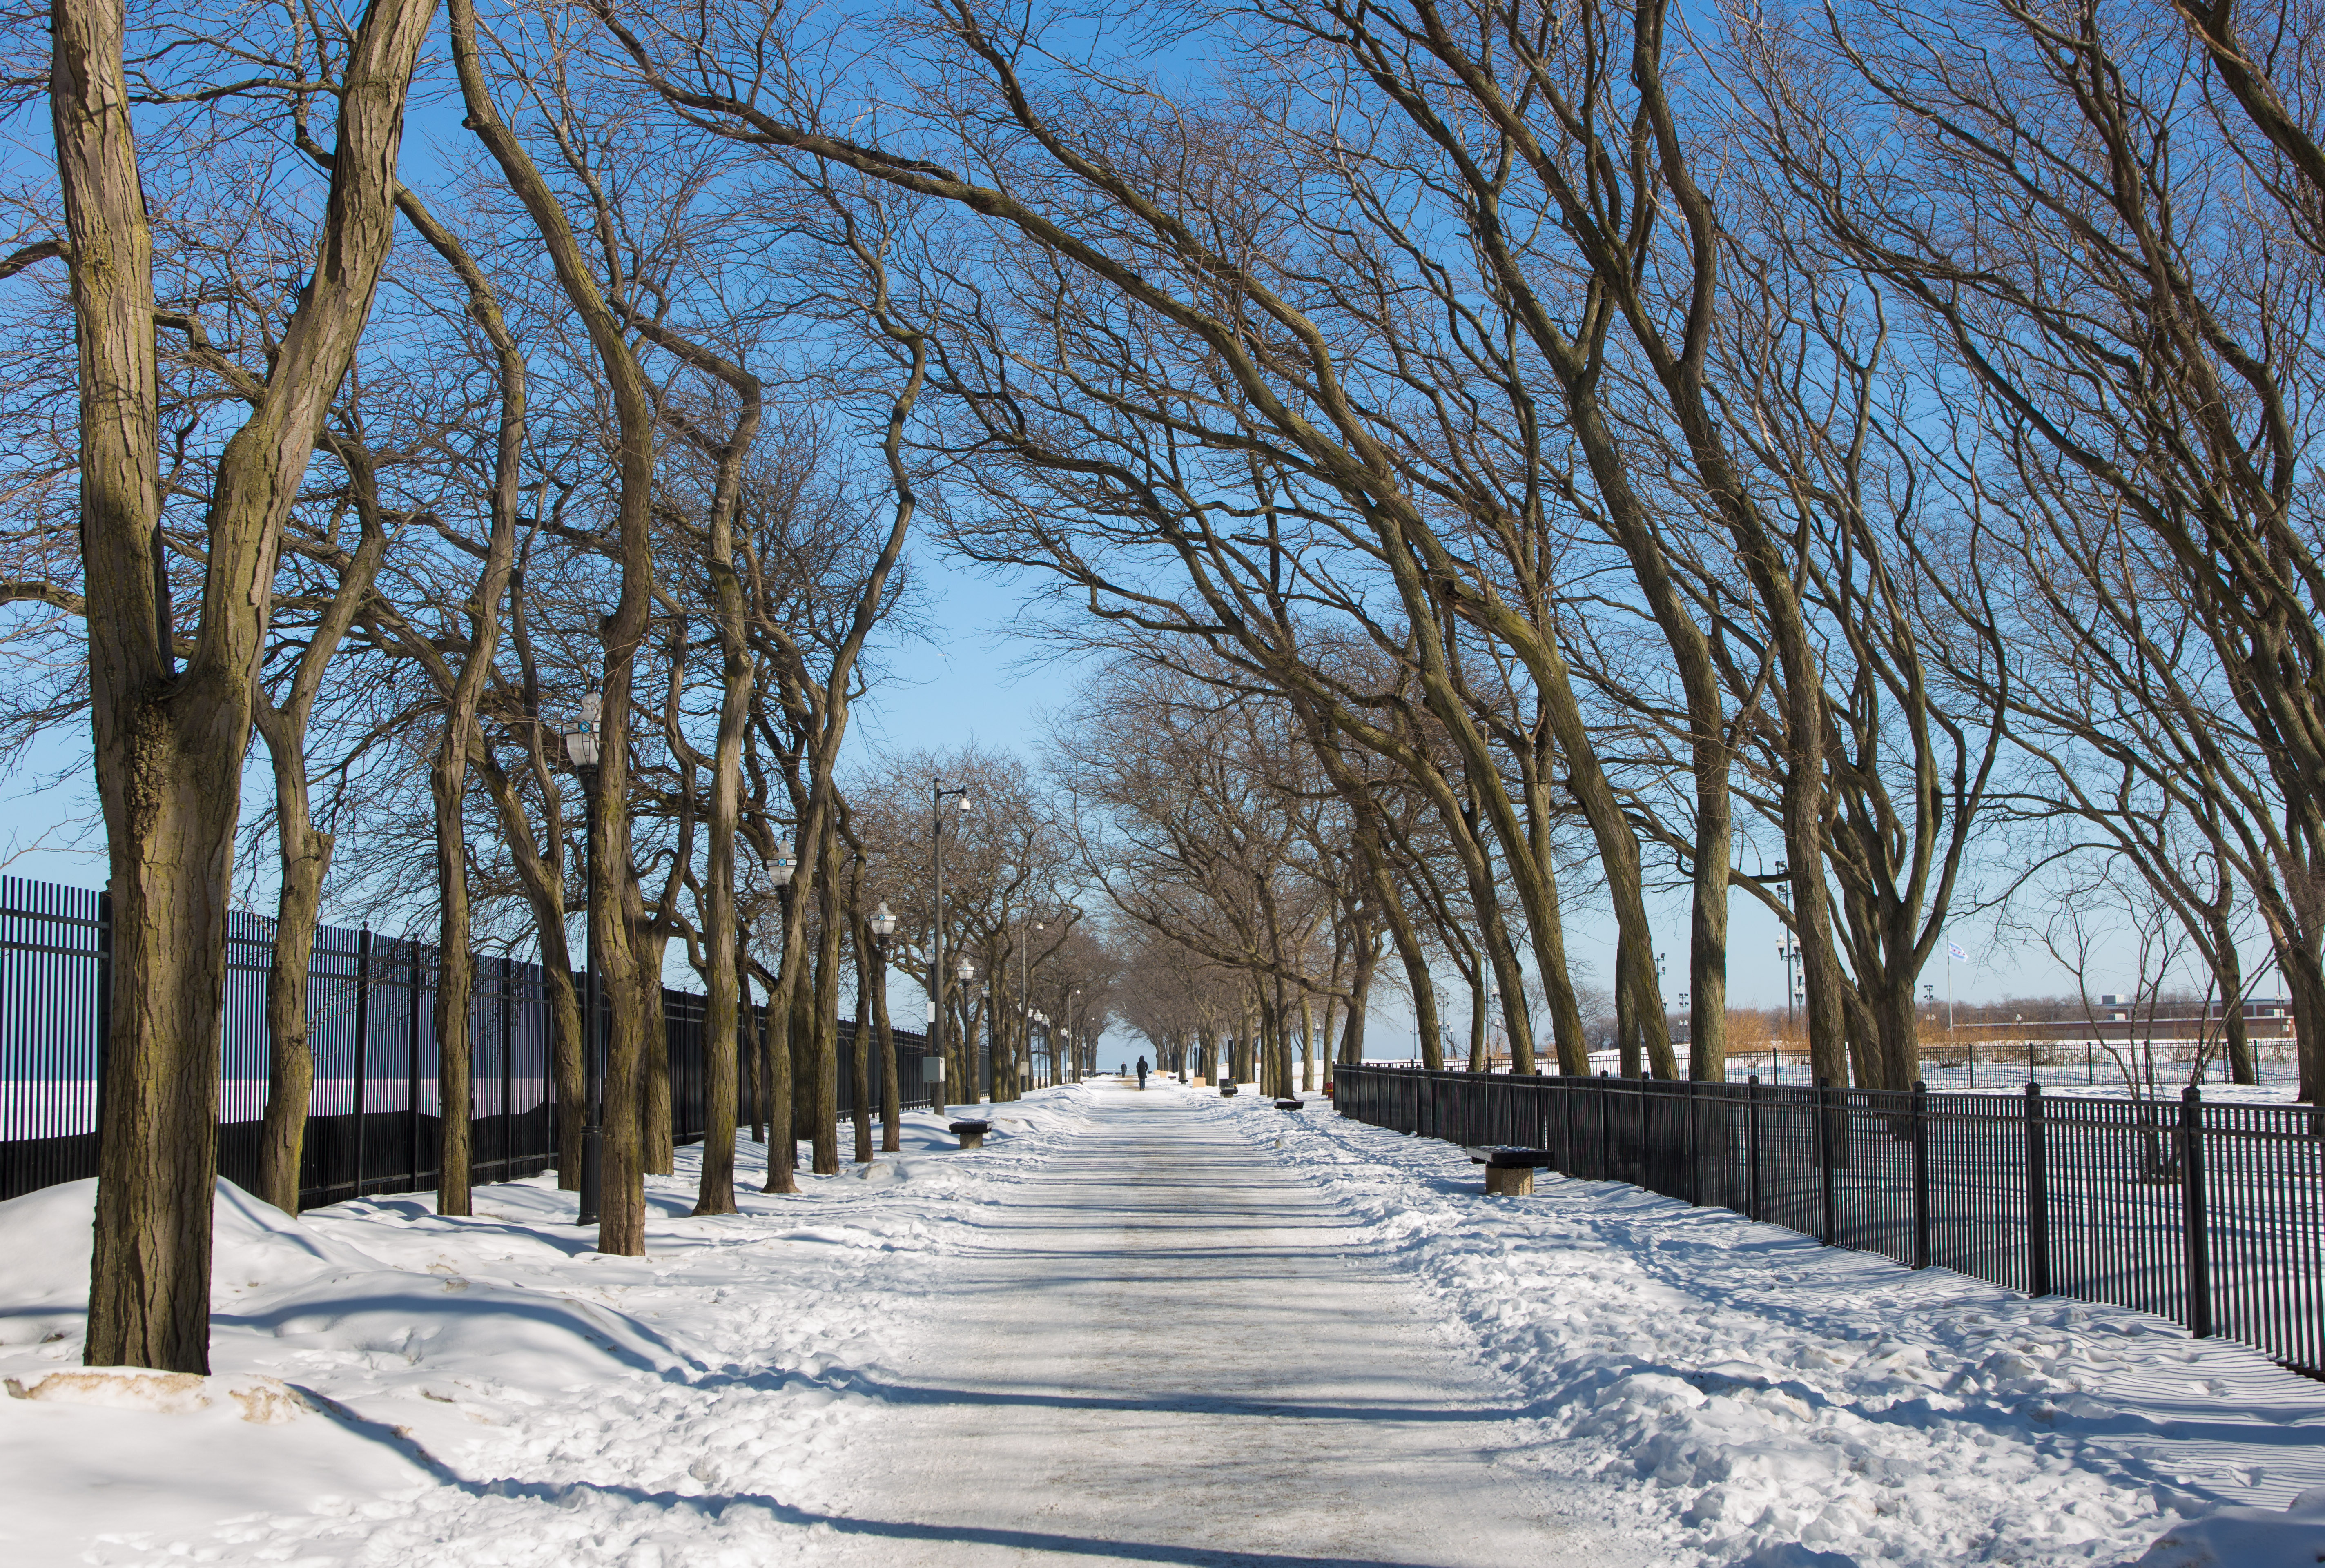 A snowy path with a row of tall trees framing the walkway.